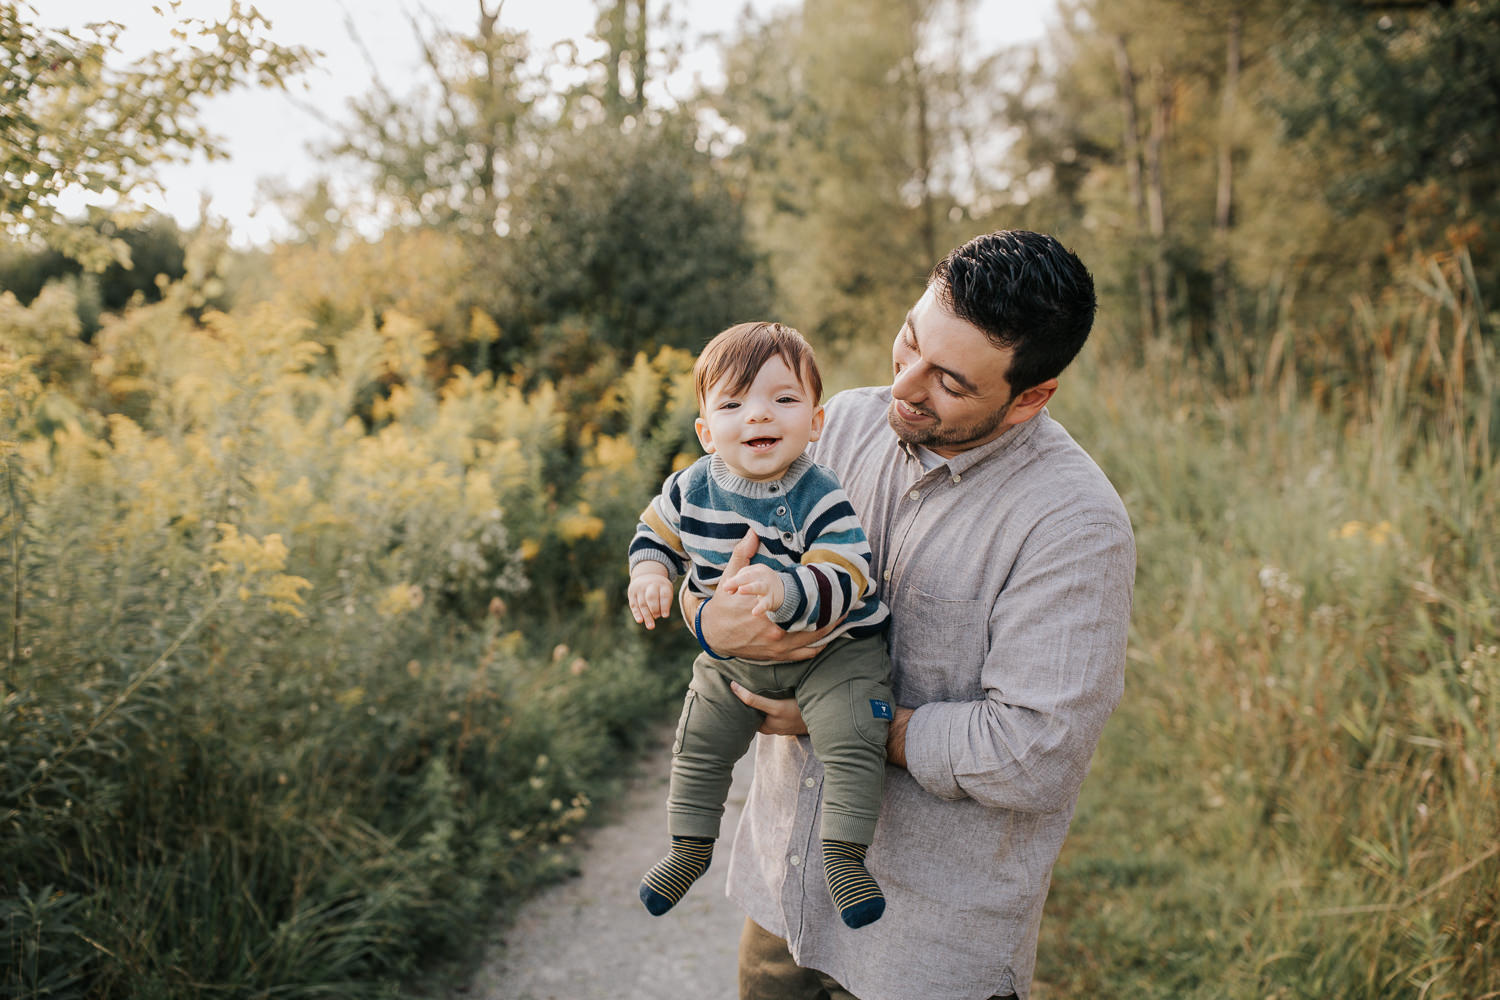 dad standing in golden field holding 1 year old baby boy, son smiling at camera, father smiling at him - York Region LifestylePhotos